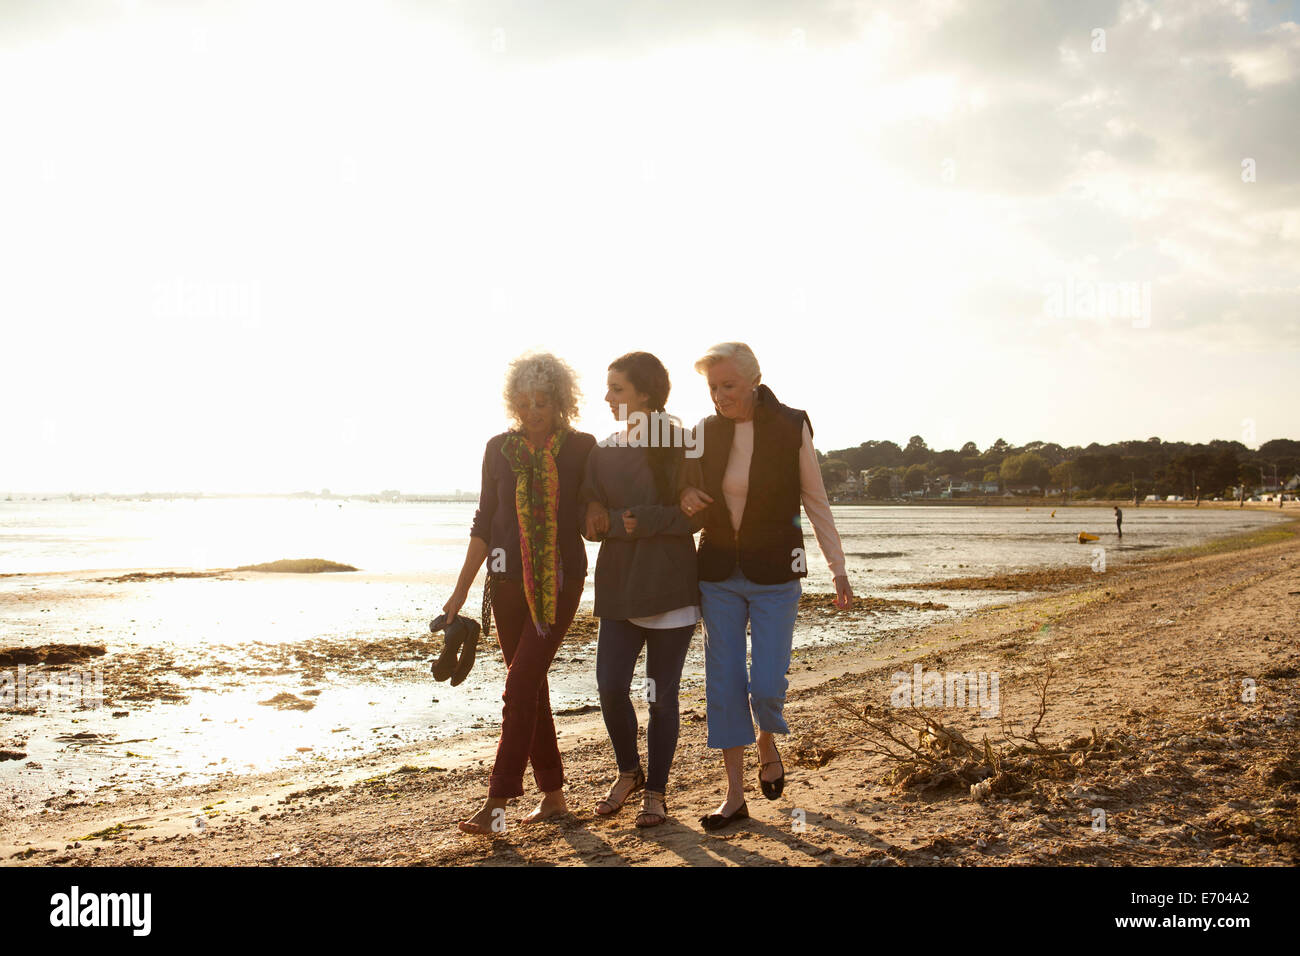 Les femmes de la famille walking on beach Photo Stock